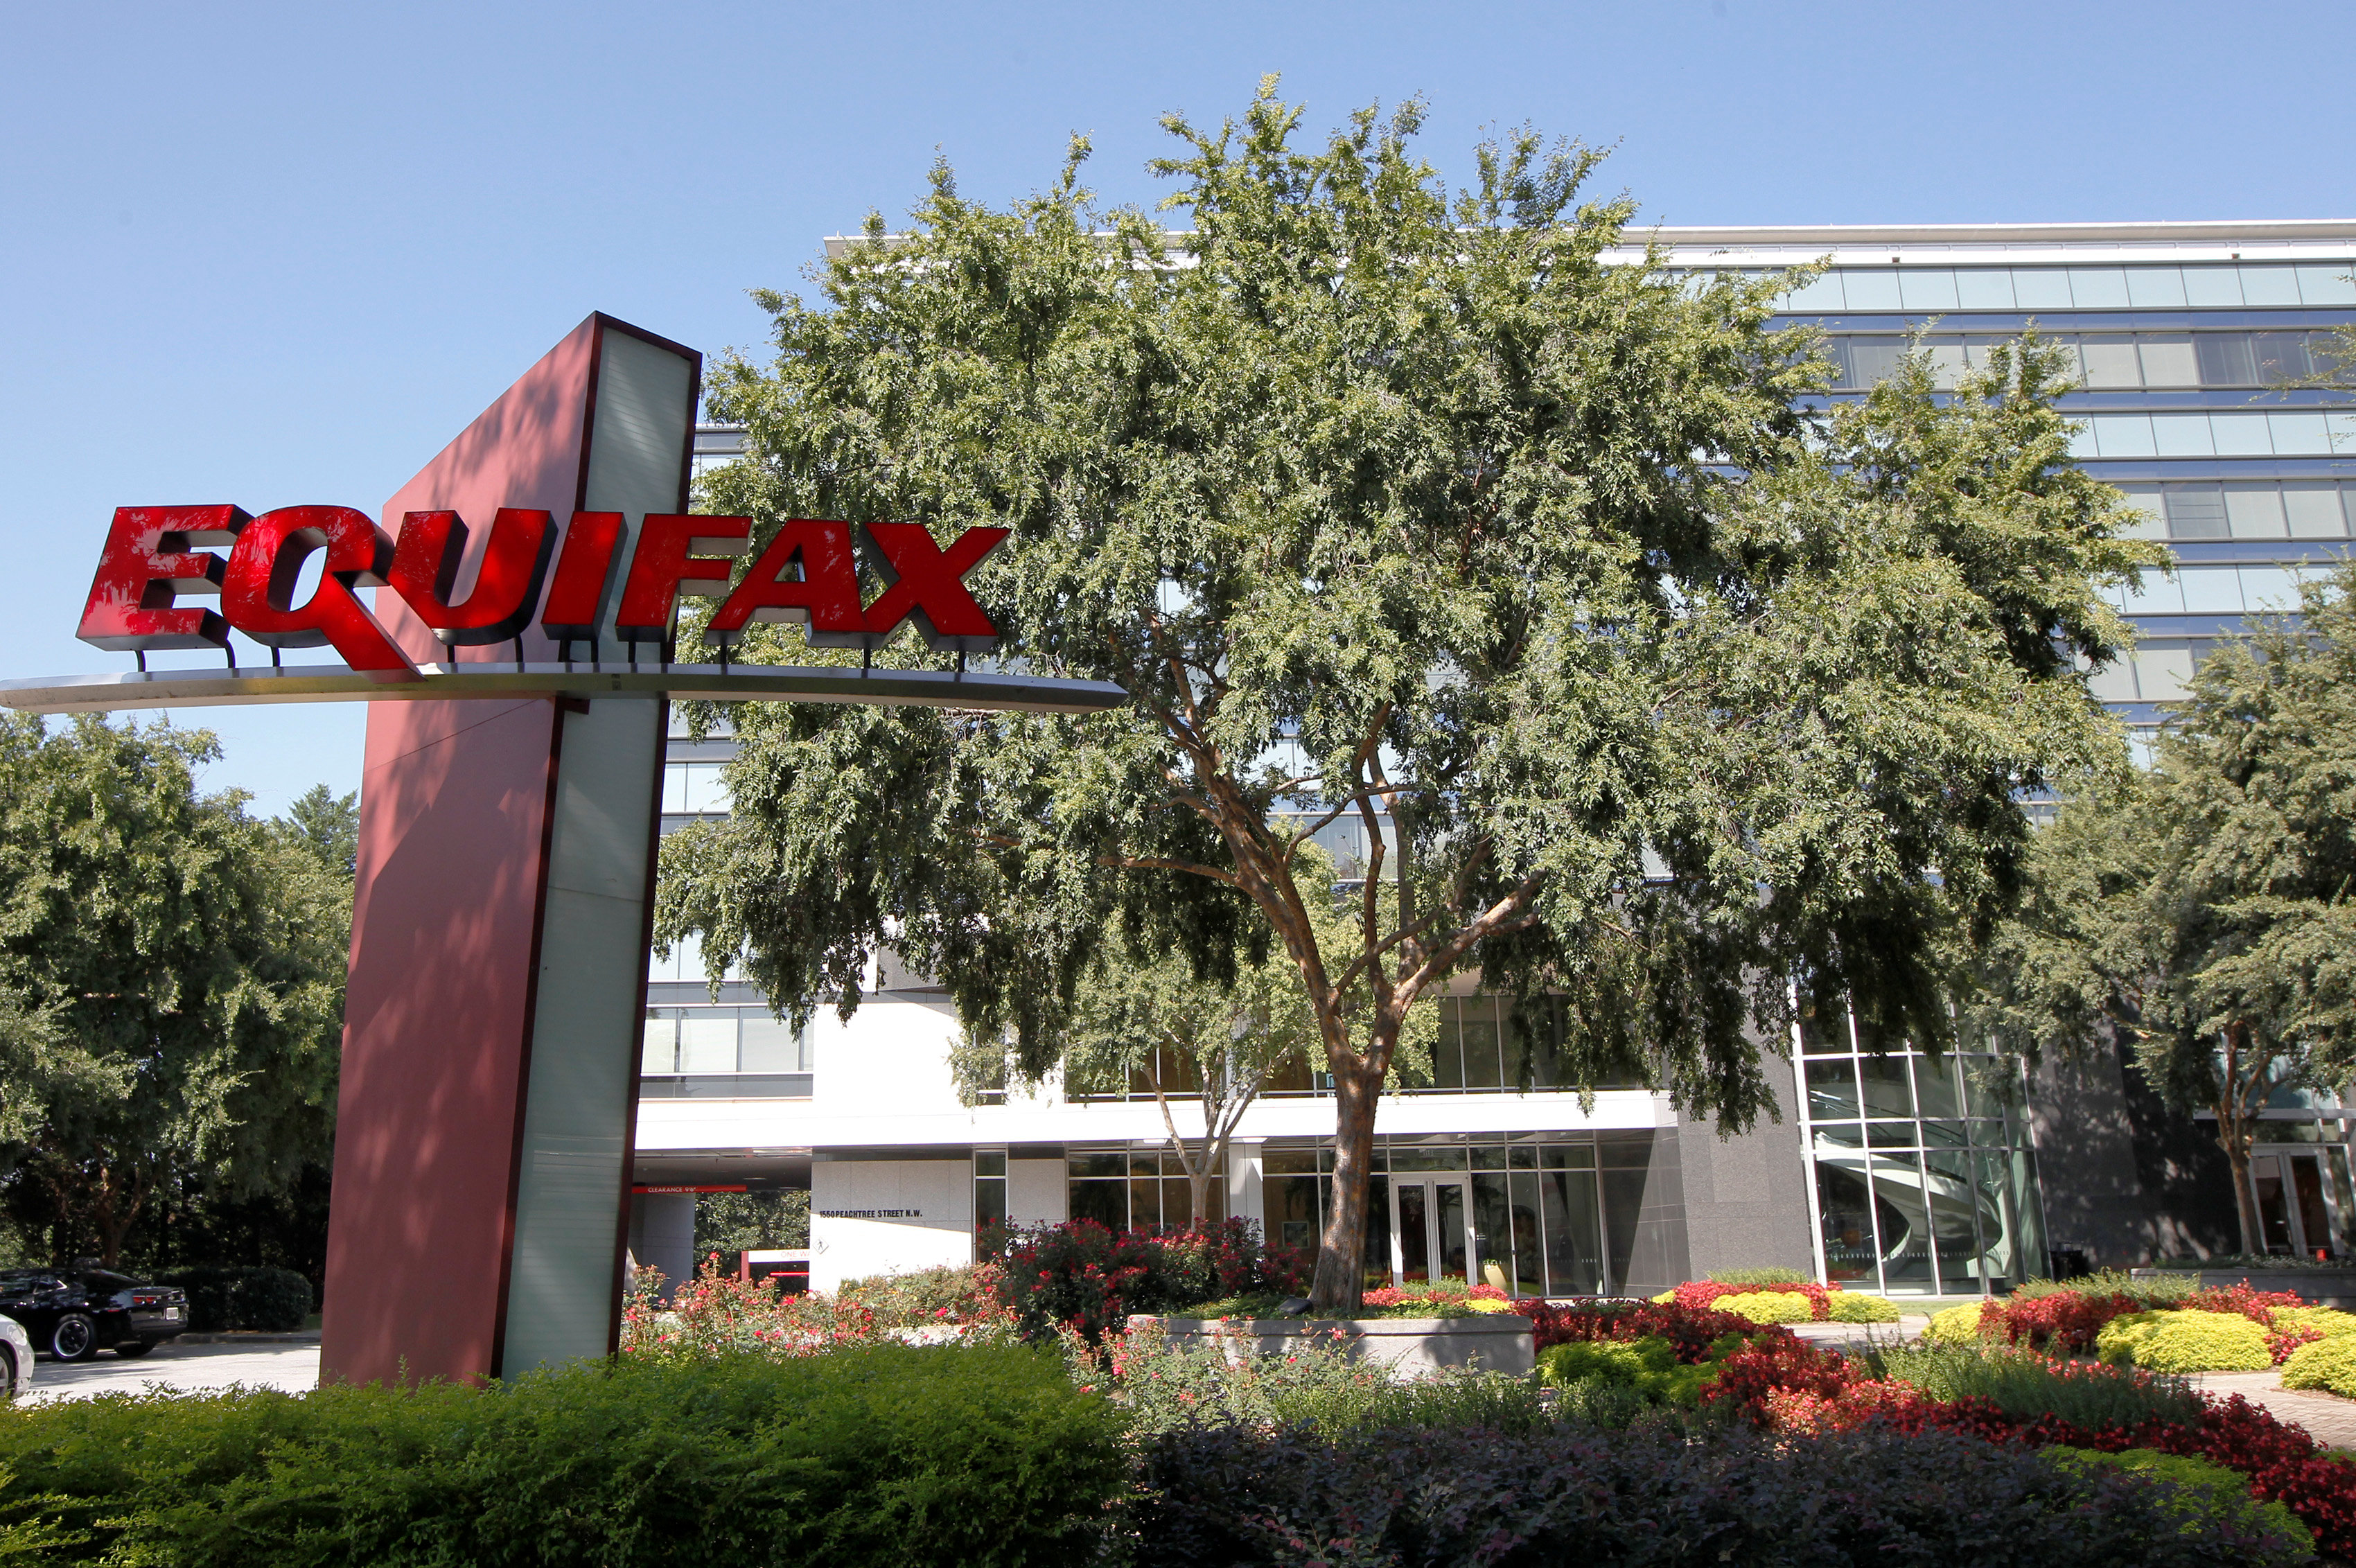 Credit reporting company Equifax  Inc. corporate offices are pictured in Atlanta, Georgia on Sept. 8, 2017. (REUTERS/Tami Chappell)